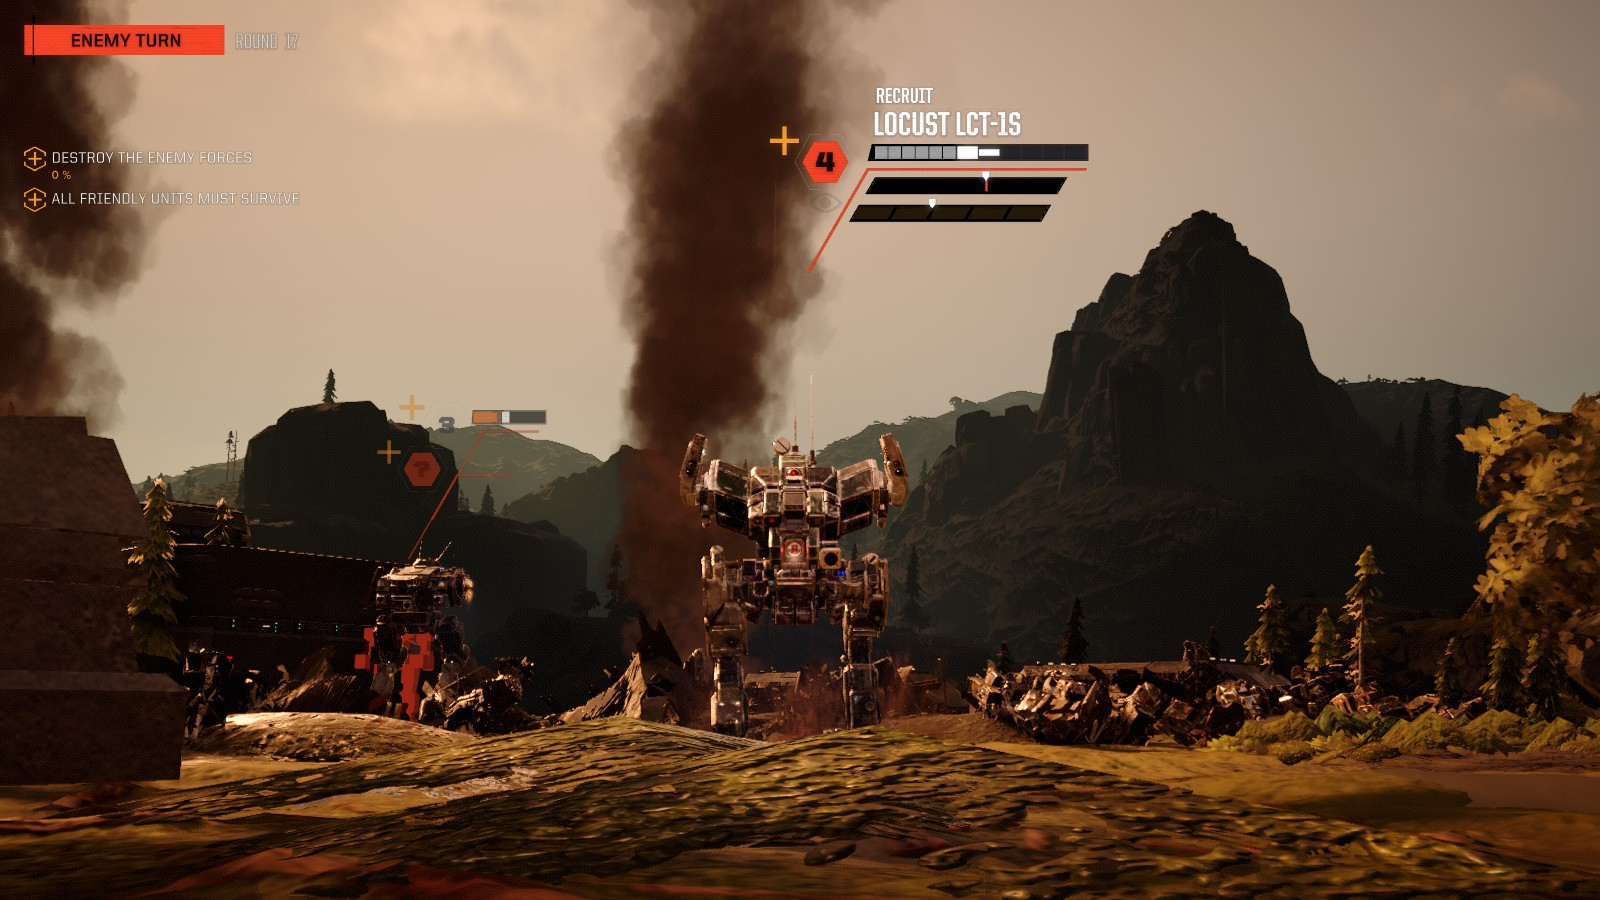 Battletech - Guide To Winning, Surviving and Making Money